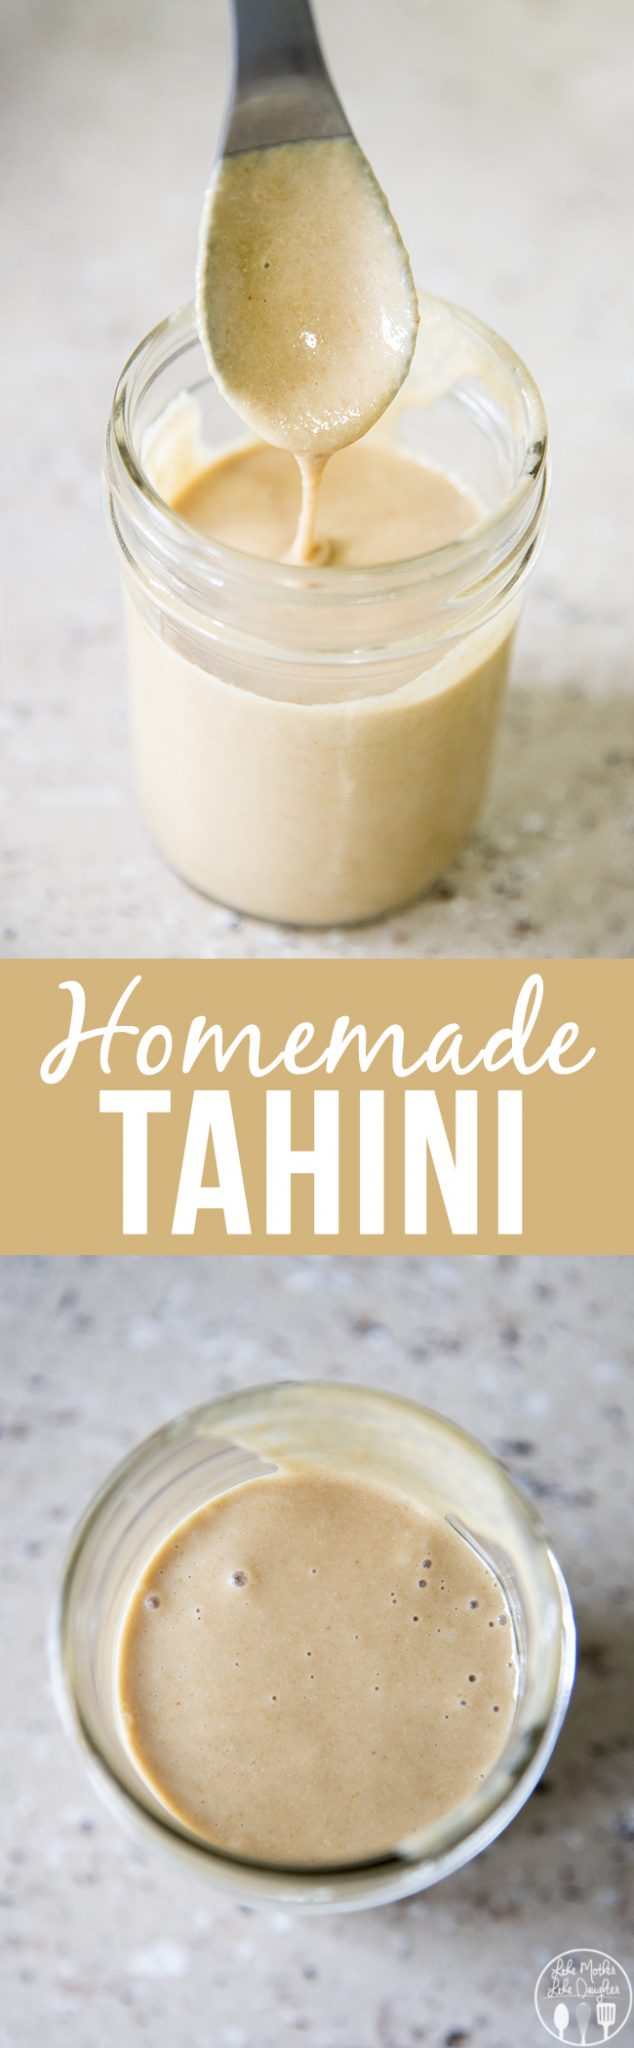 This homemade tahini is only 2 ingredients and only takes about 8 minutes to make and its perfect for use in many recipes, especially homemade hummus!